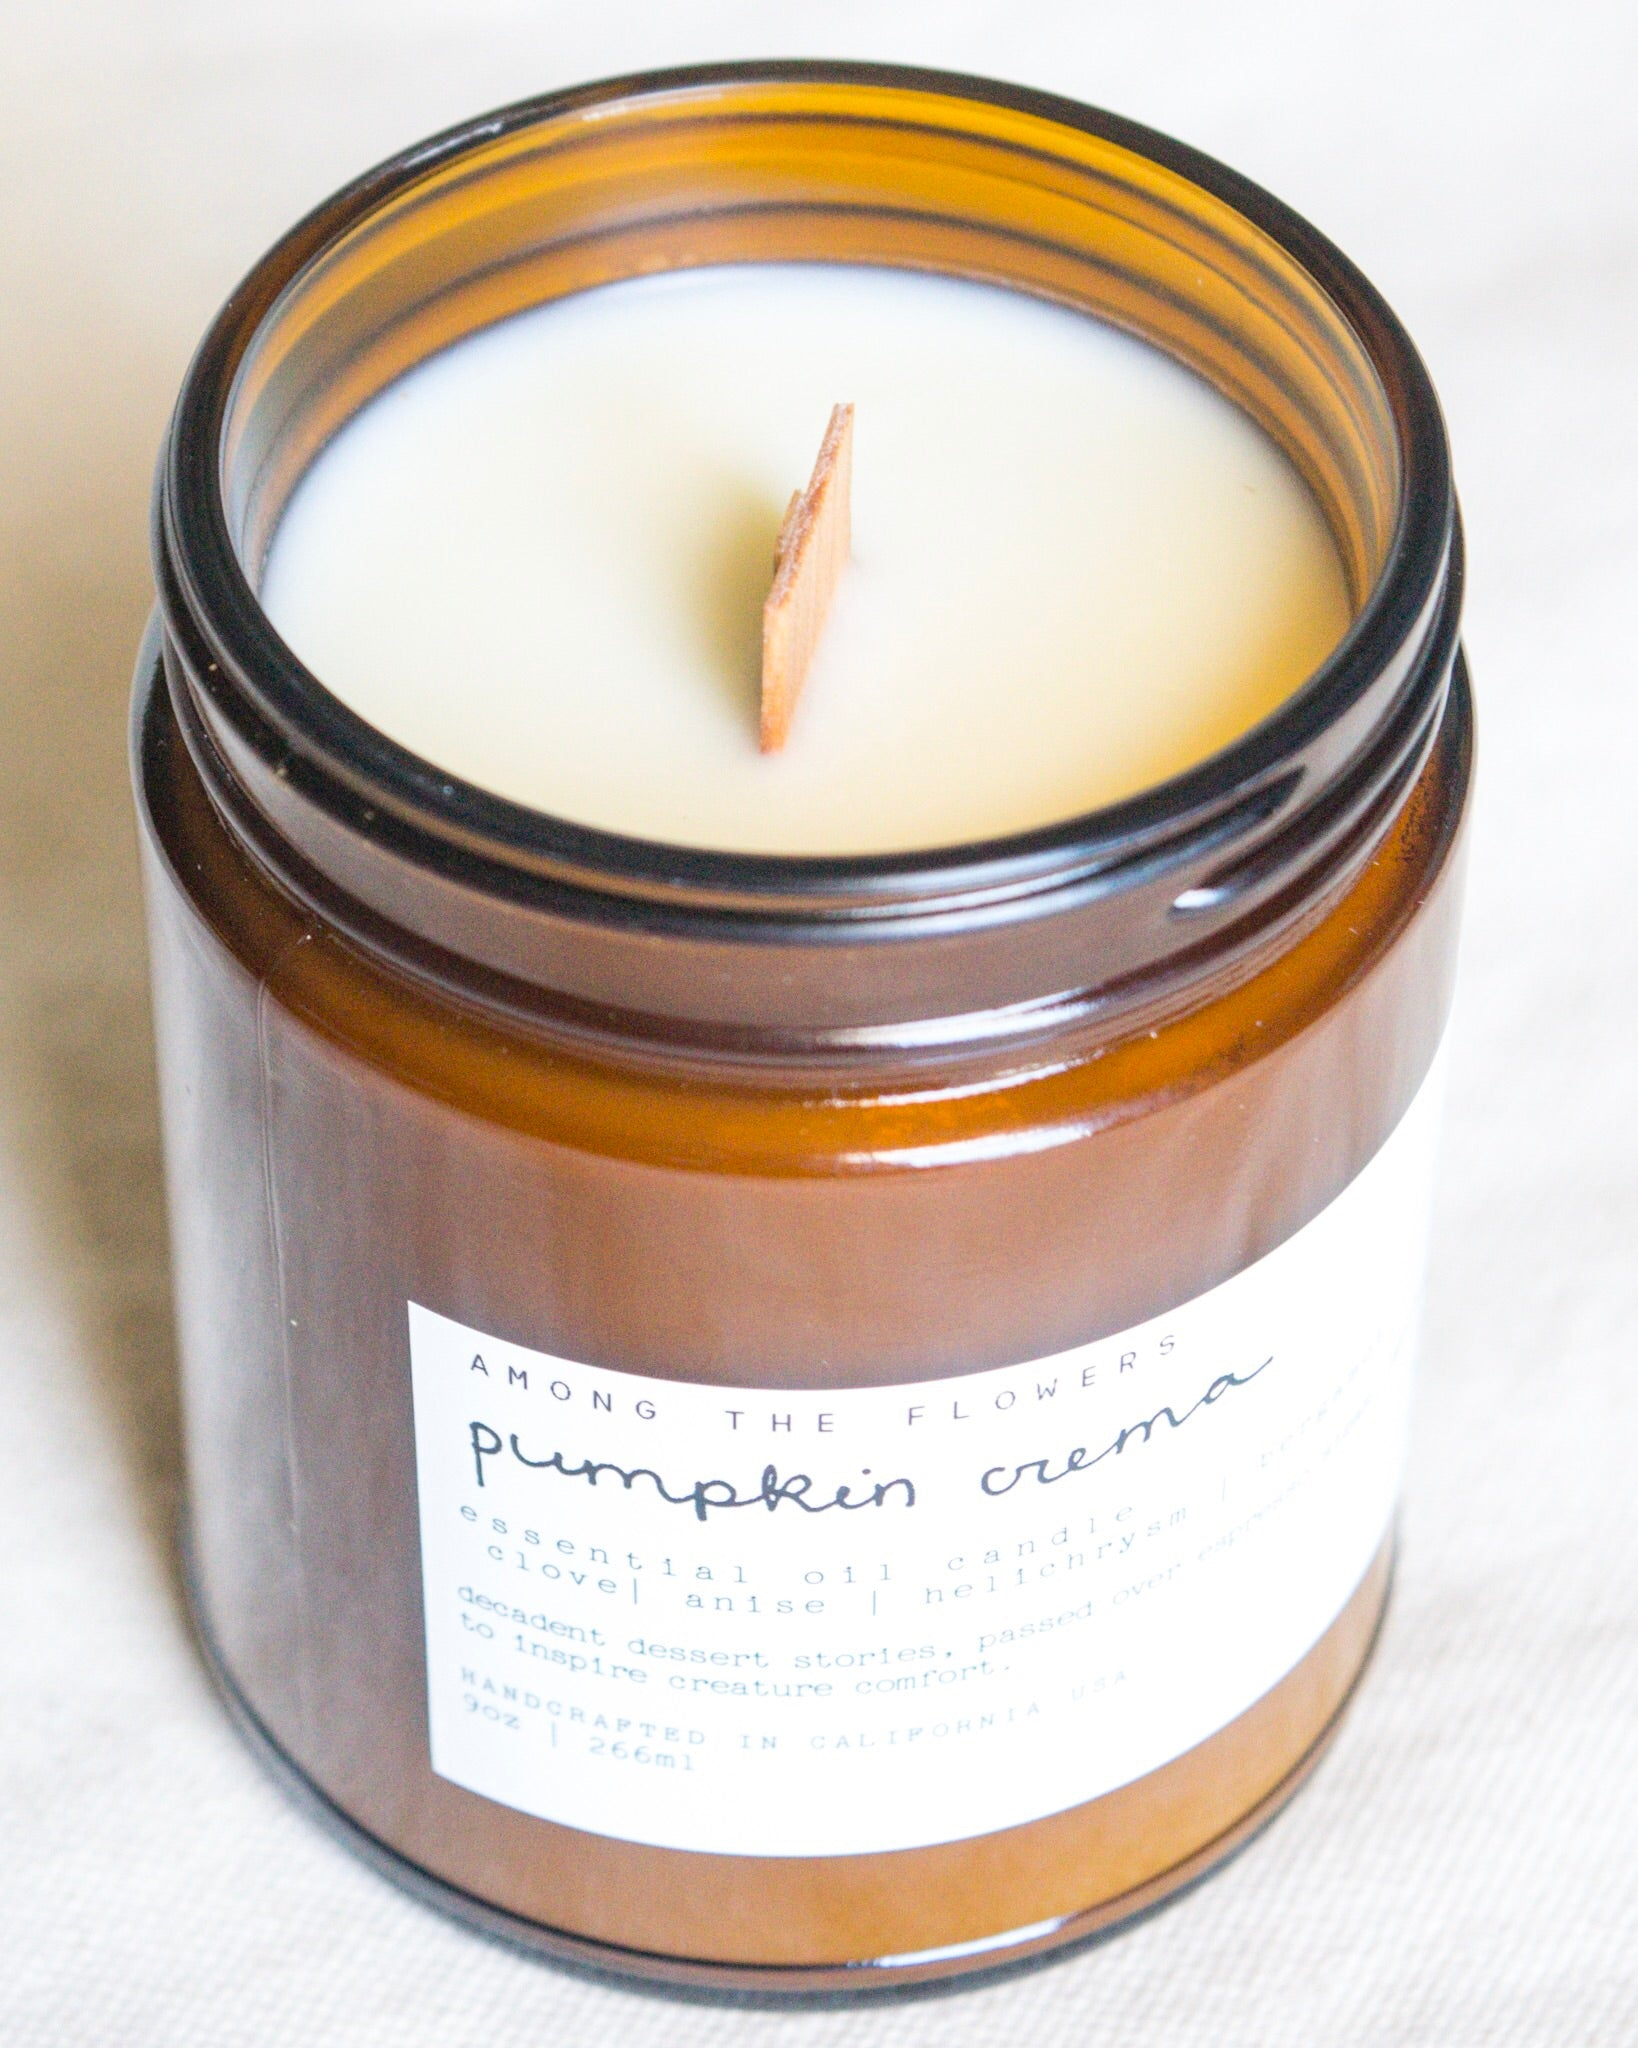 Essential Oil + Soy Wax Candle | Pumpkin Crema